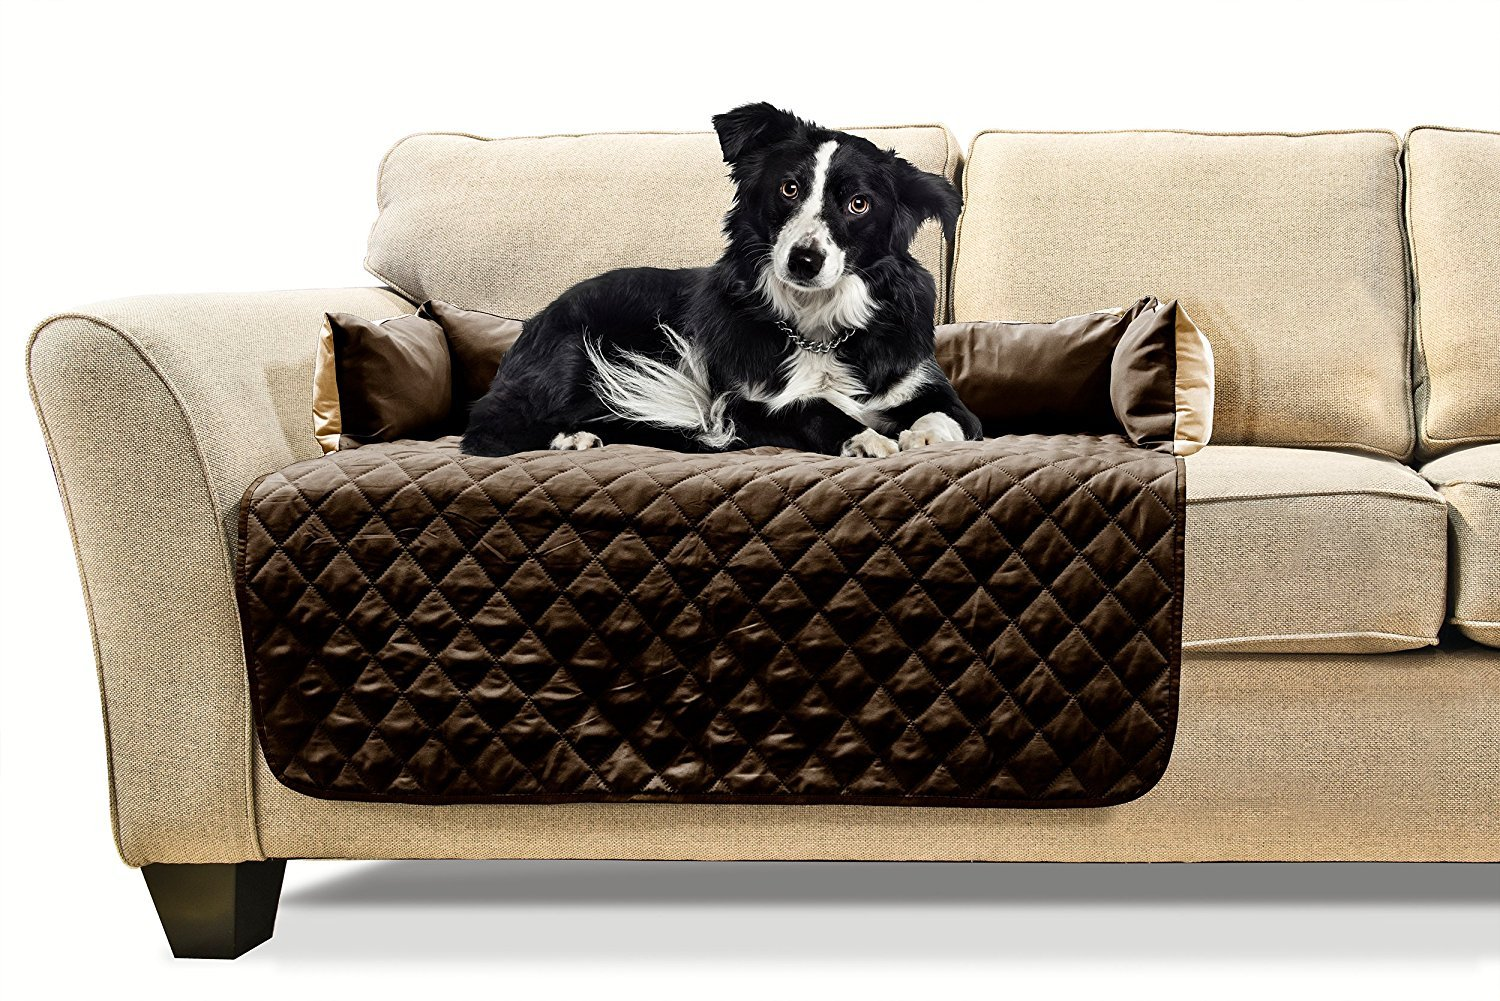 FurHaven Pet Furniture Cover | Sofa Buddy Reversible Furniture Cover Protector Pet Bed for Dogs & Cats - Available in 3 Colors & Sizes